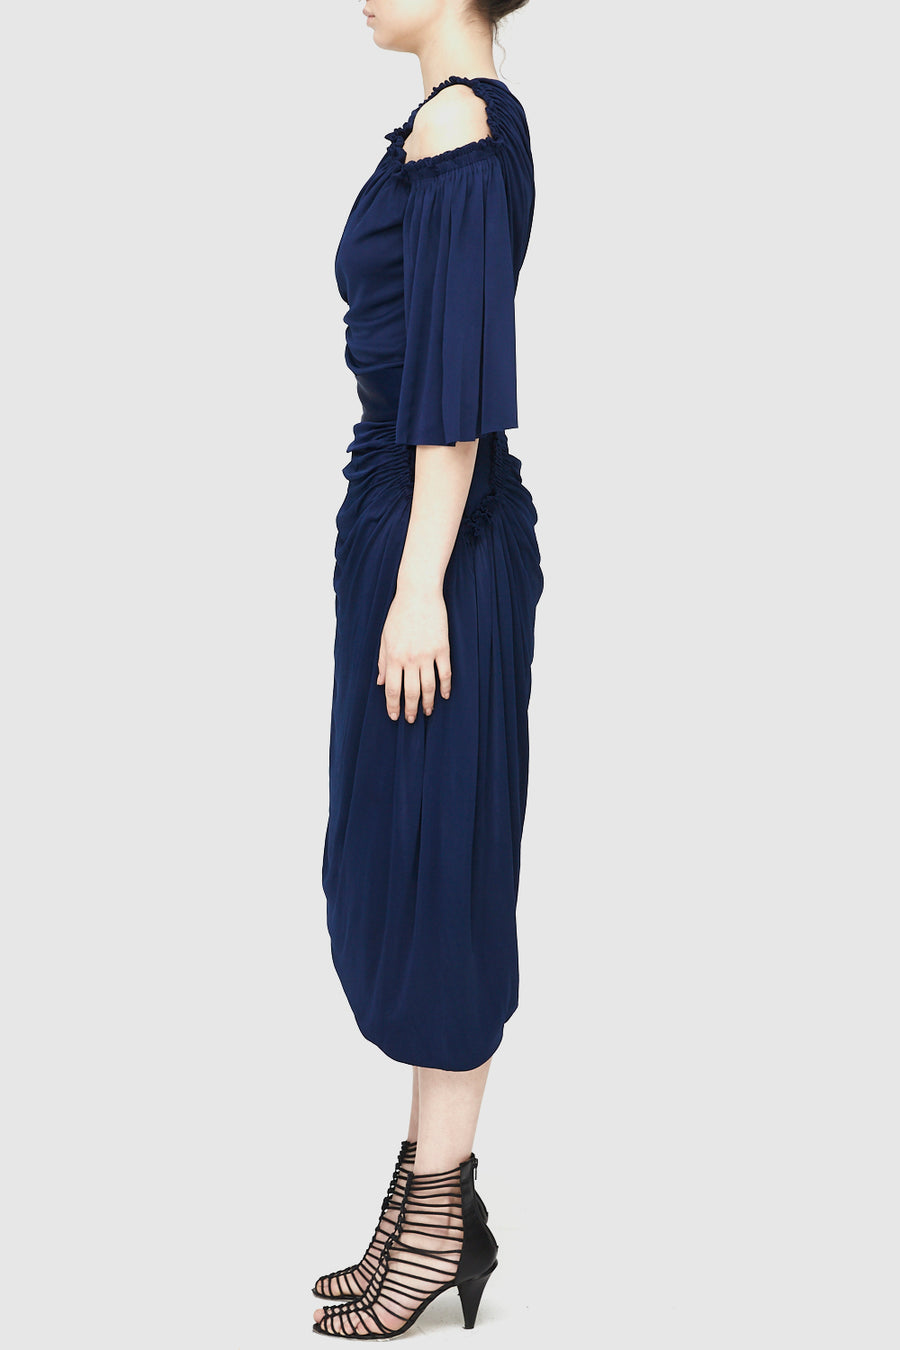 Cellular Drape Skirt - Indigo